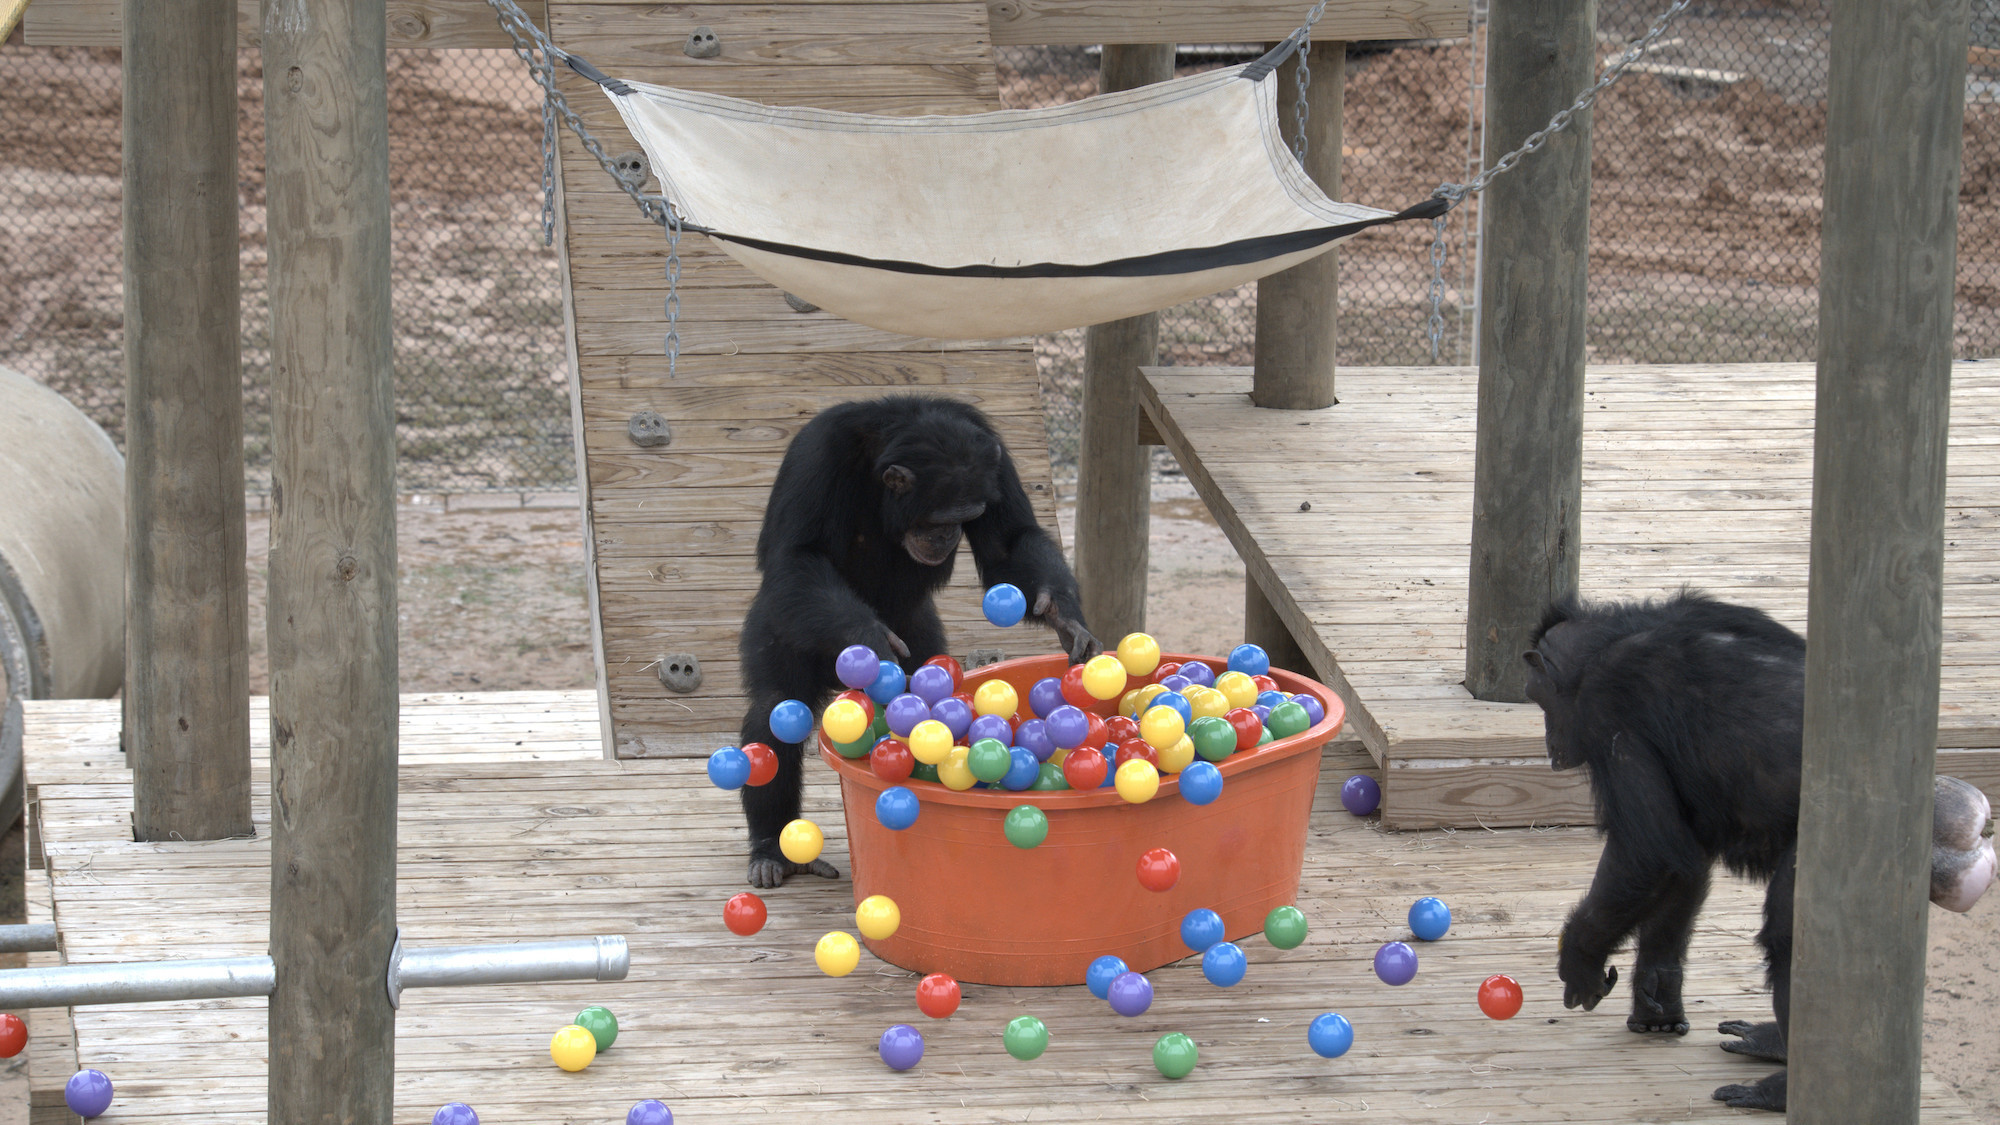 Riley tossing balls out of the ball pit as another chimp approaches. Slim's group. (National Geographic/Virginia Quinn)